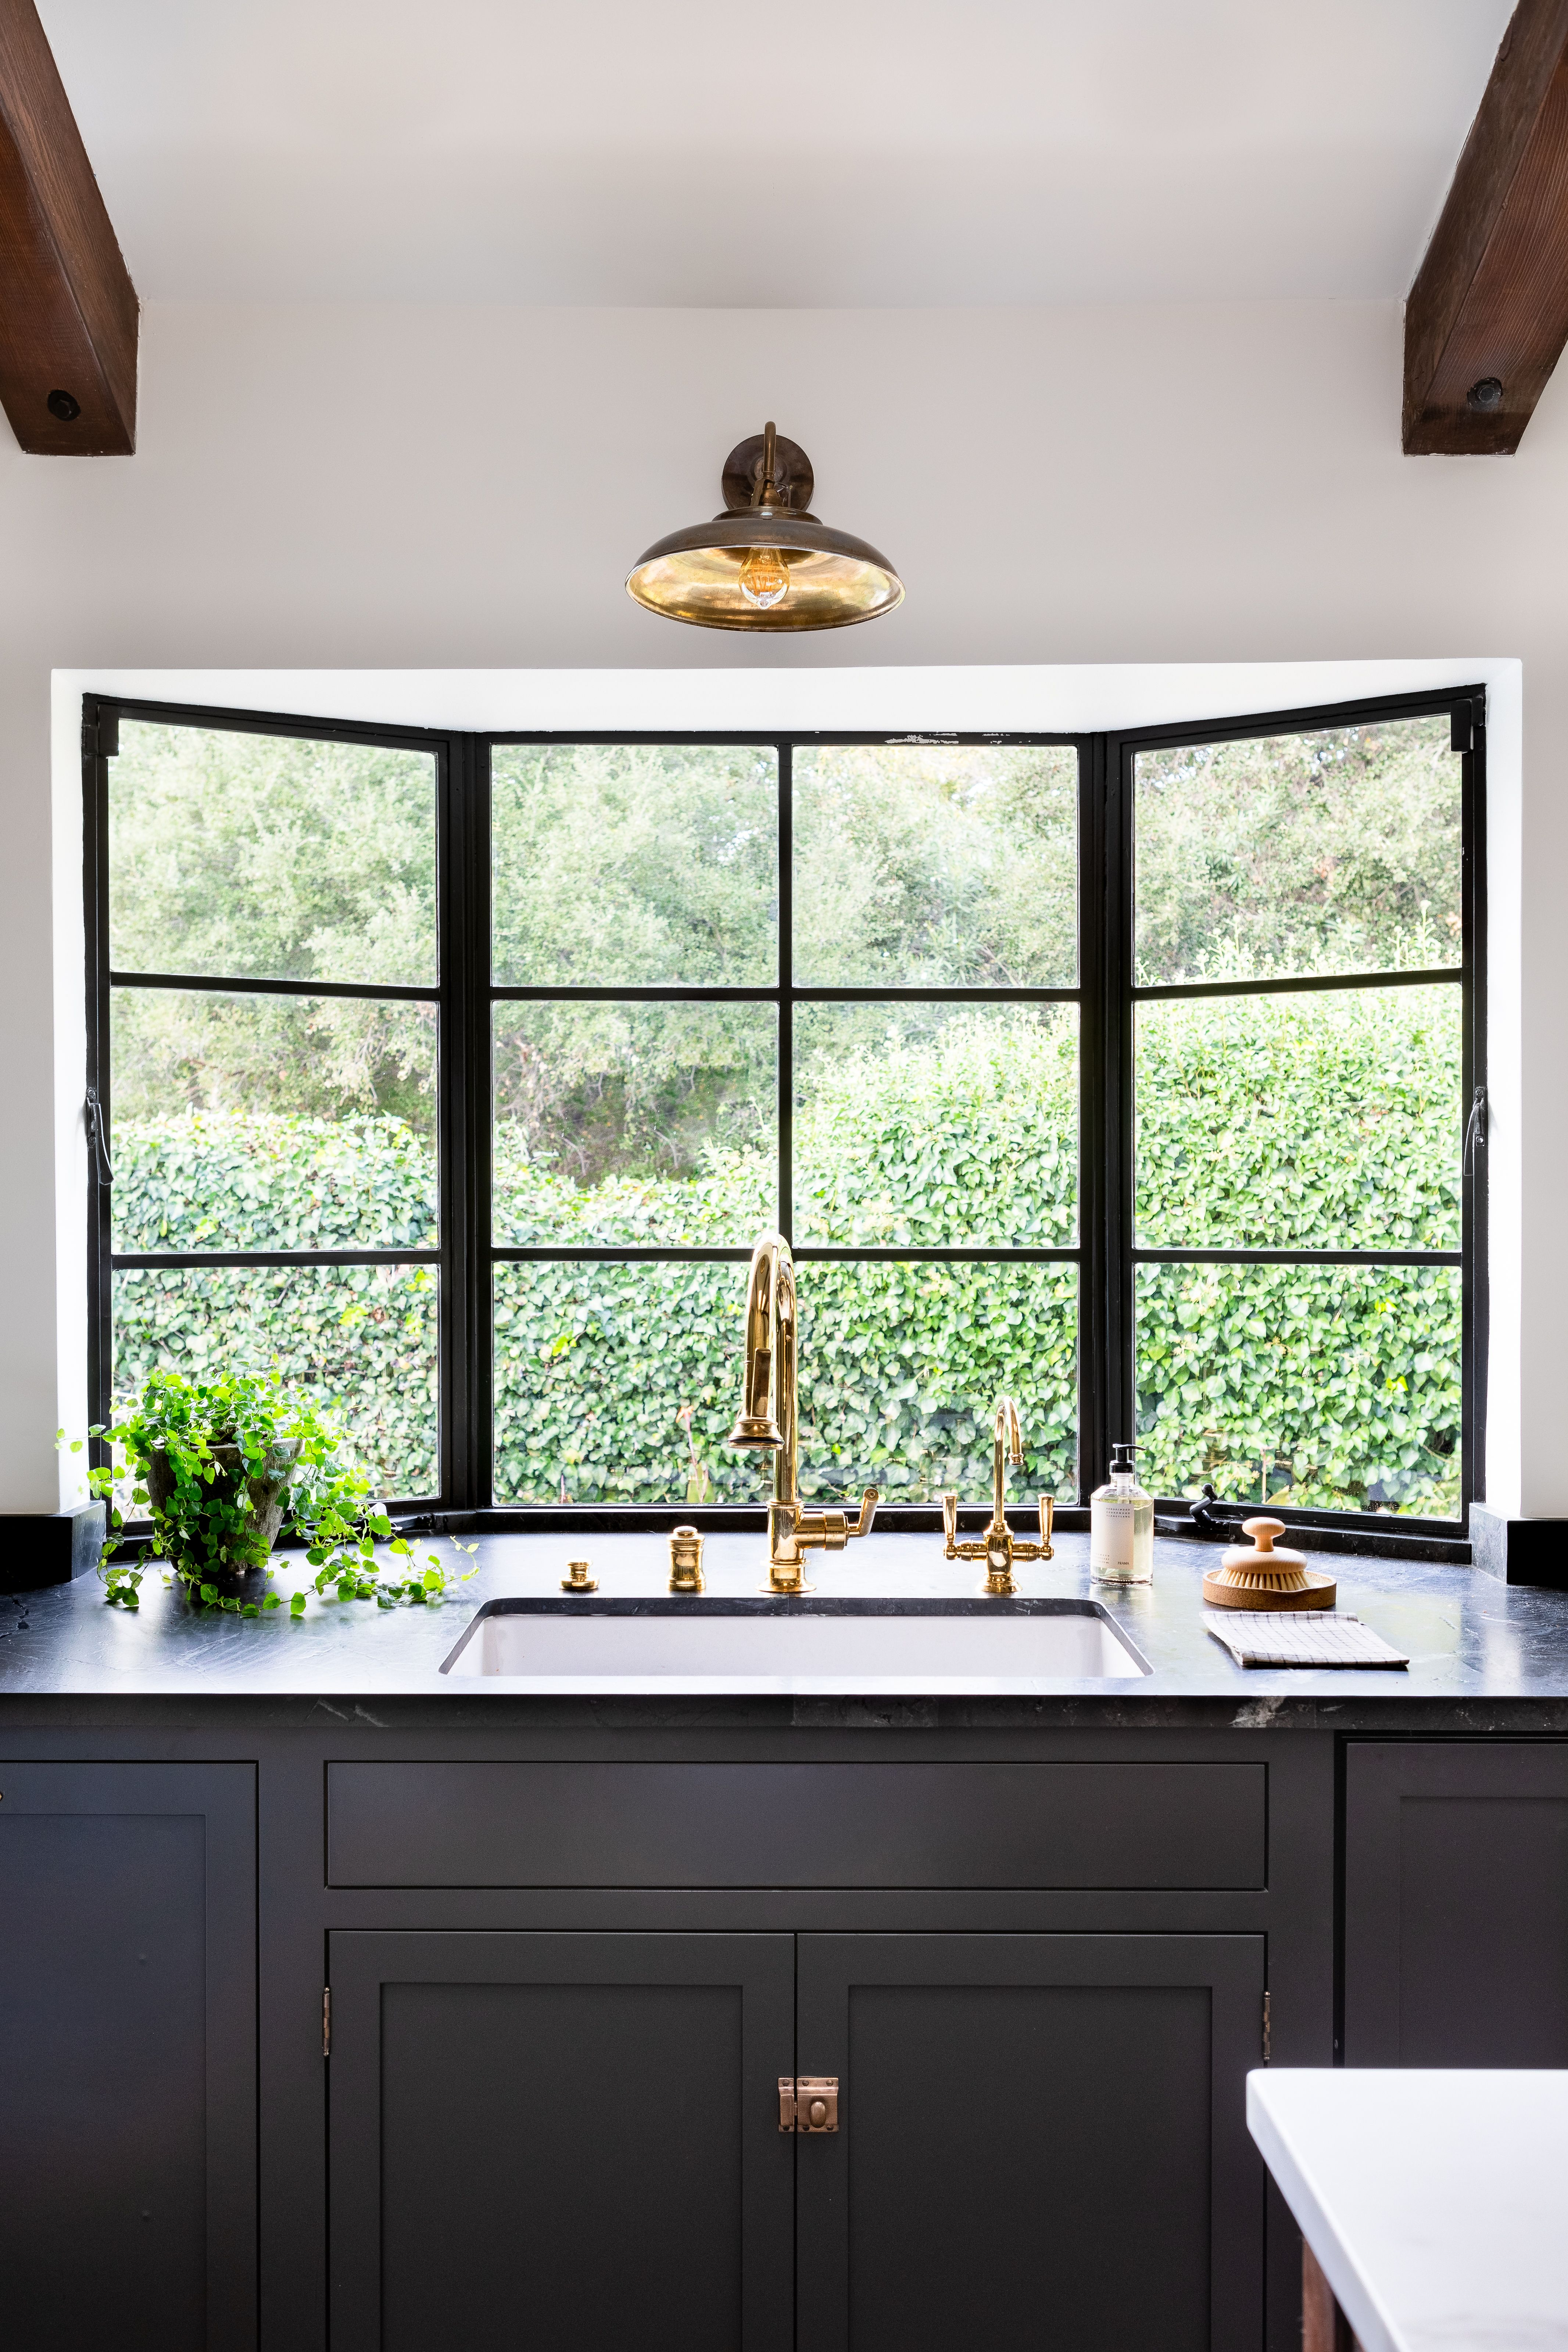 behold 10 transitional kitchen ideas that will stop you in your tracks interior design on kitchen interior with window id=62836